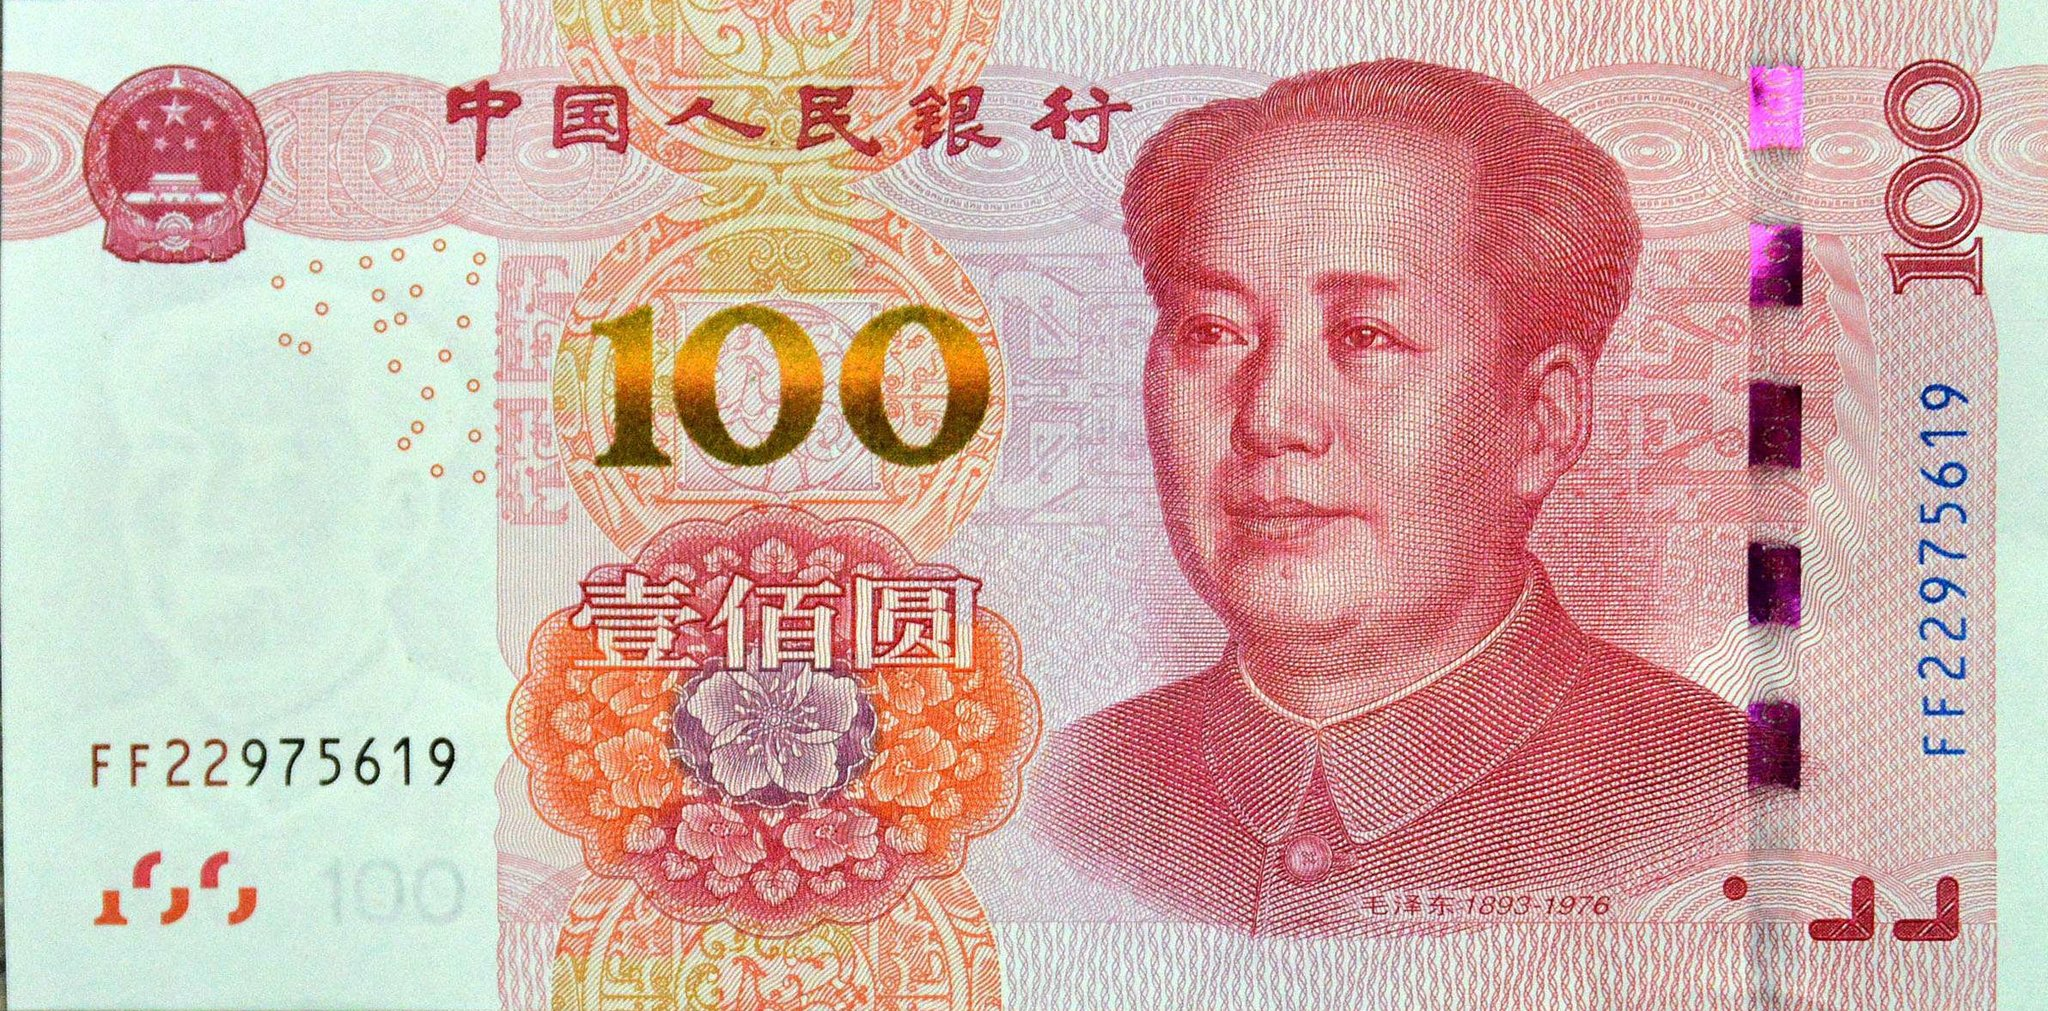 The Rmb Was Added To Imf S Basket Of Currencies Two Years Ago Meaning It Is Now A Reserve Currency That Can Be Used As Unit Exchange In